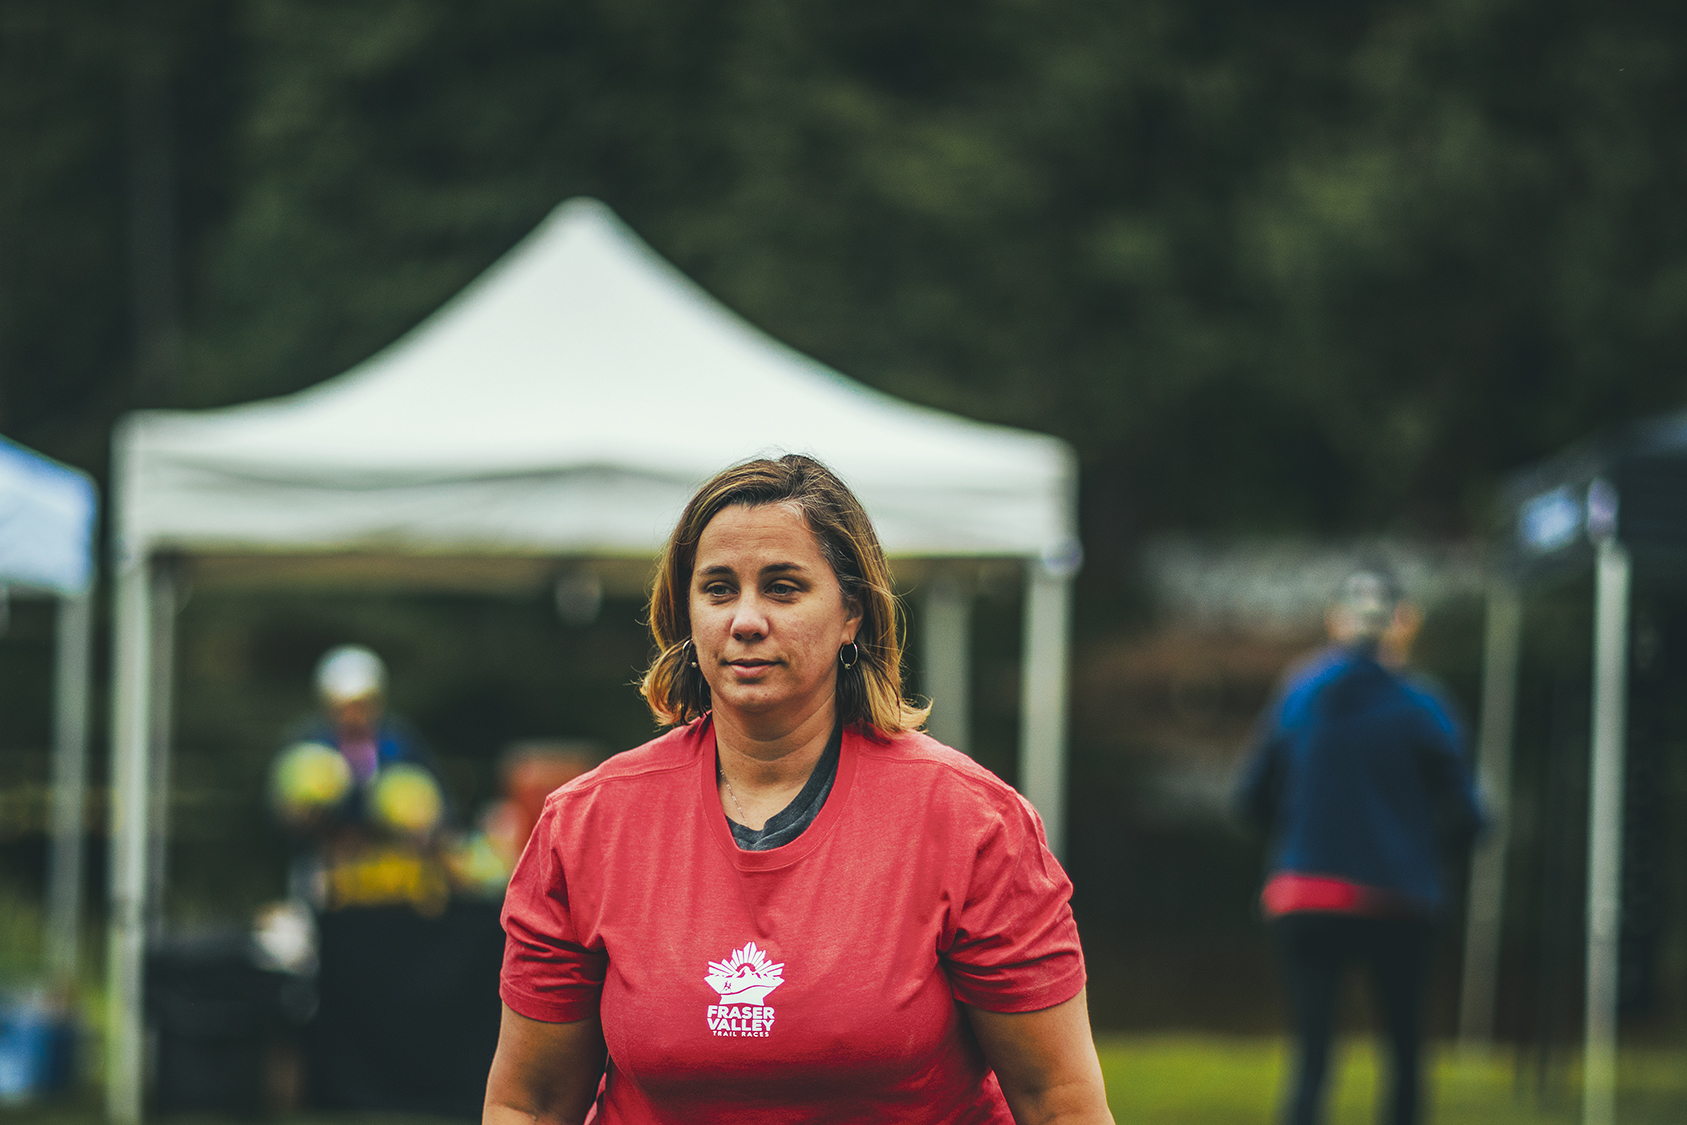 Fraser Valley Trail Races - Bear Mountain - IMG_1159 by Brice Ferre Studio - Vancouver Portrait Adventure and Athlete Photographer.jpg